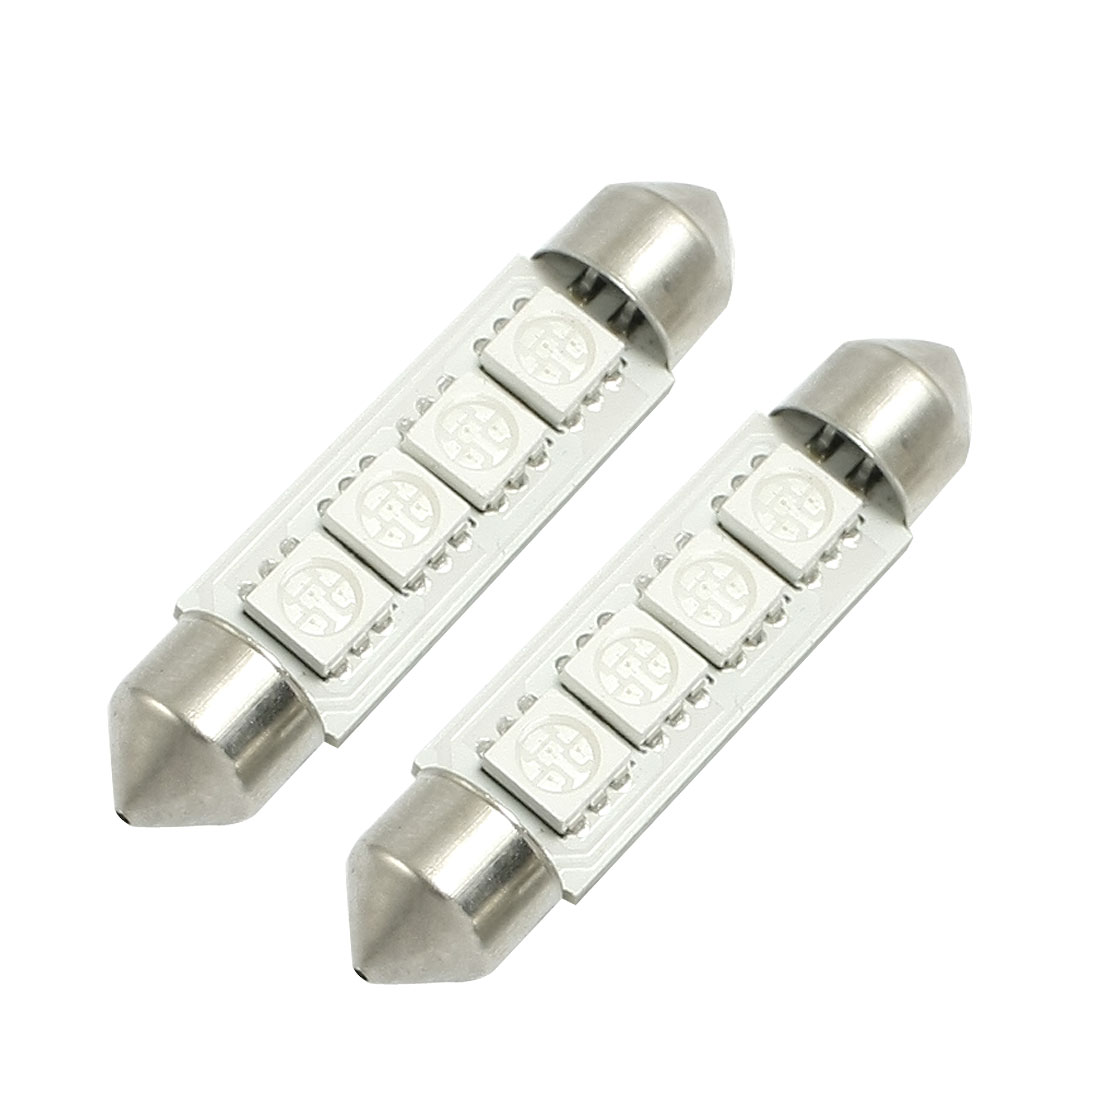 2 Pcs 5050 SMD 42mm 4 Blue LED Replacement Plate Lights Bulbs for Car Van